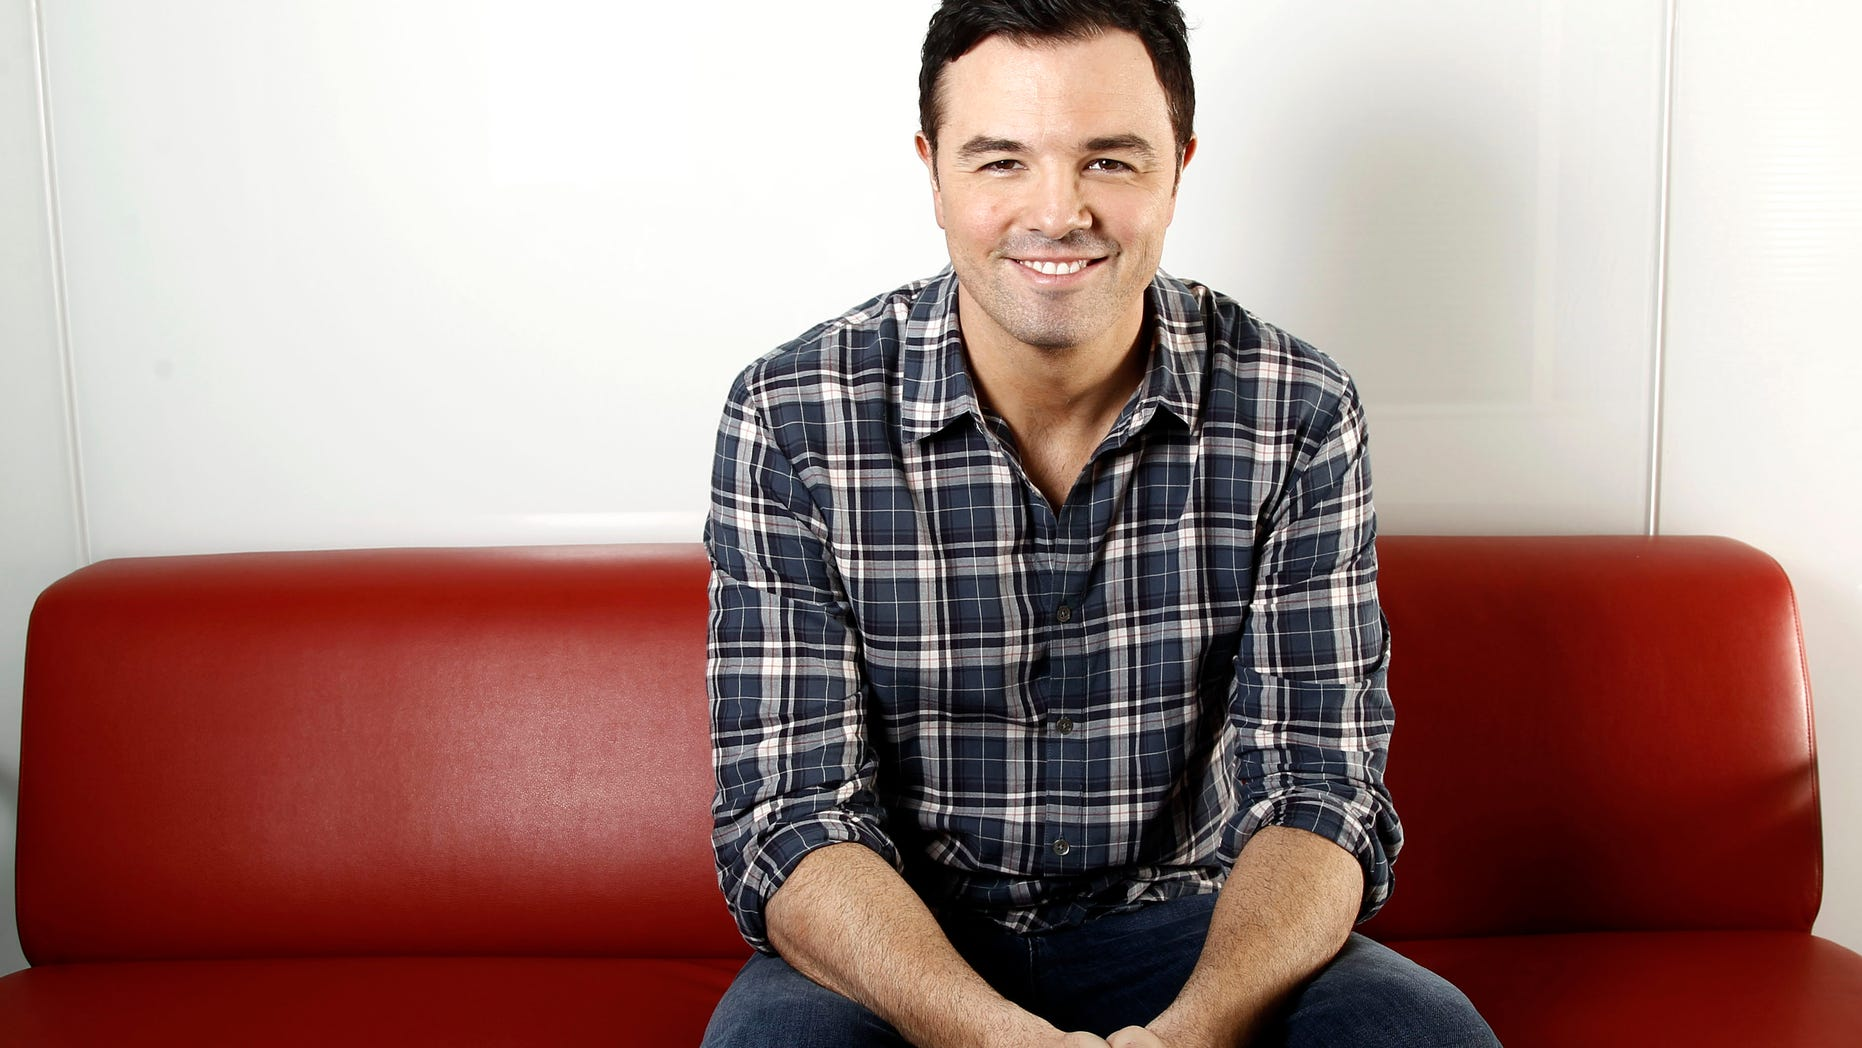 """FILE - This Oct. 1, 2011 file photo shows Seth MacFarlane in Los Angeles. NBC announced Wednesday, Aug. 29, 2012, that Seth MacFarlane will host""""Saturday Night Live"""" for its 38th season premiere on Sept. 15. Musical guest will be Frank Ocean. The multitalented MacFarlane created the Fox series """"Family Guy"""" and serves as writer, producer and voice artist on the show. He recently directed his first feature film, """"Ted,"""" and furnished the voice for its teddy-bear title character. (AP Photo/Matt Sayles, file)"""